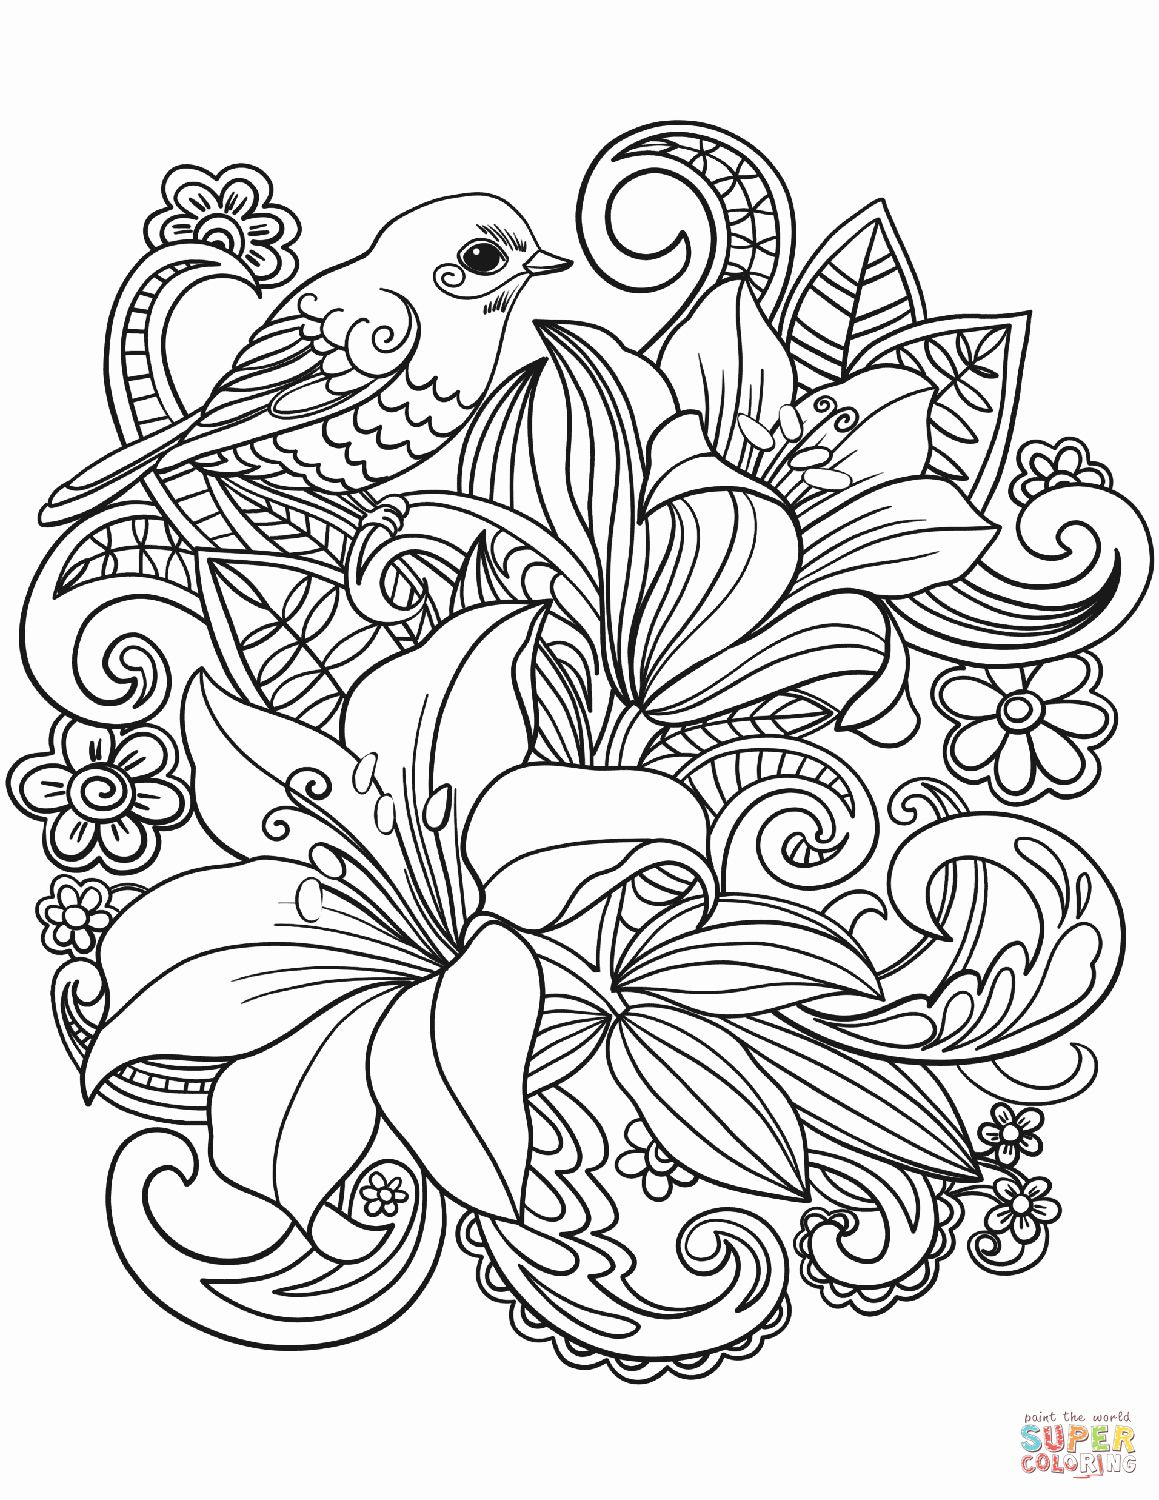 Pictures Of Flowers Coloring Pages Beautiful Skylark And Flowers Coloring Page Printable Flower Coloring Pages Mandala Coloring Pages Flower Coloring Sheets